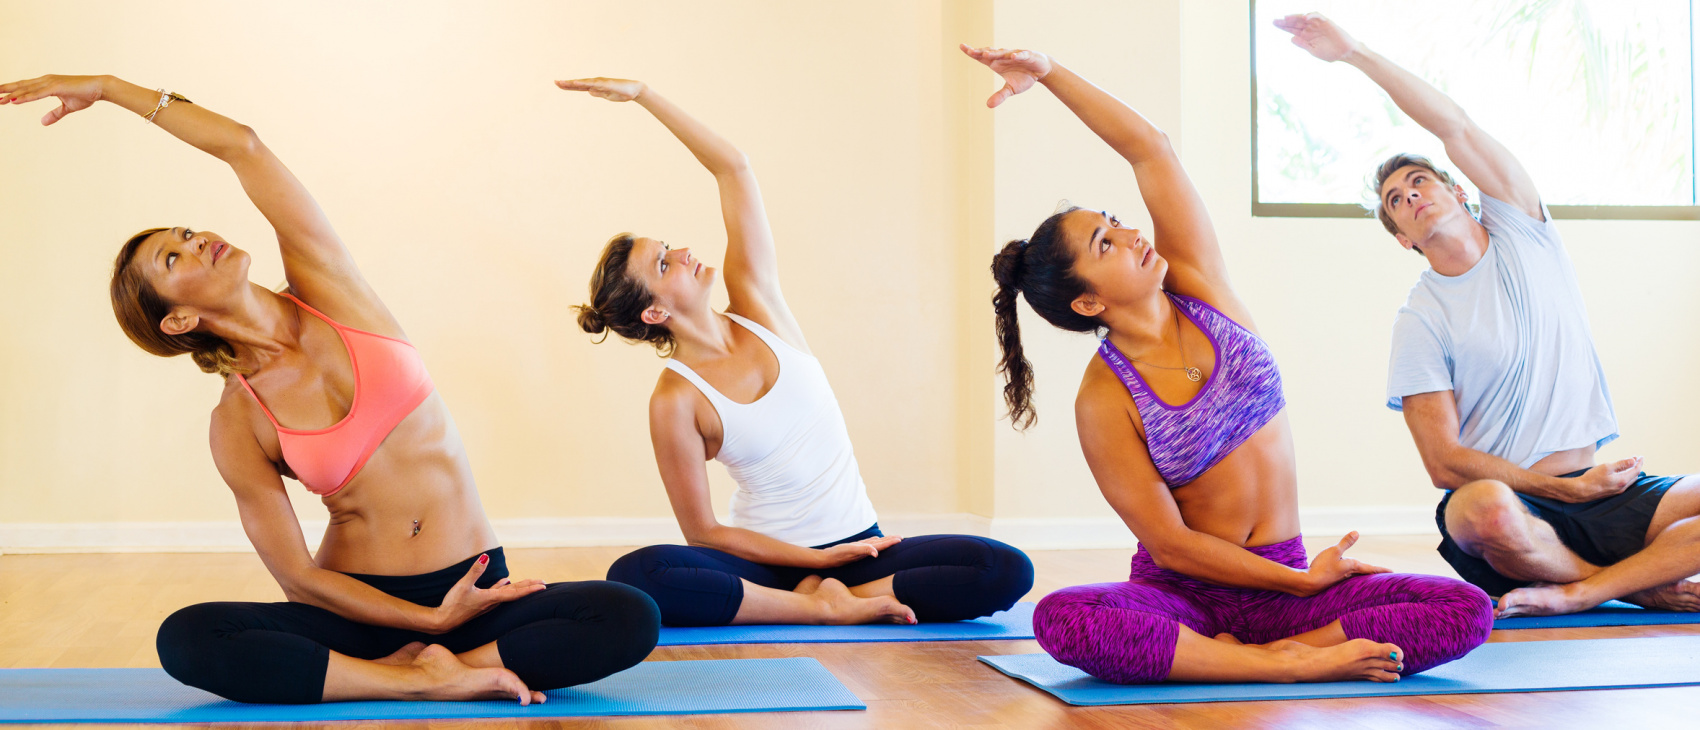 What are some mind-blowing facts about Yoga? 3